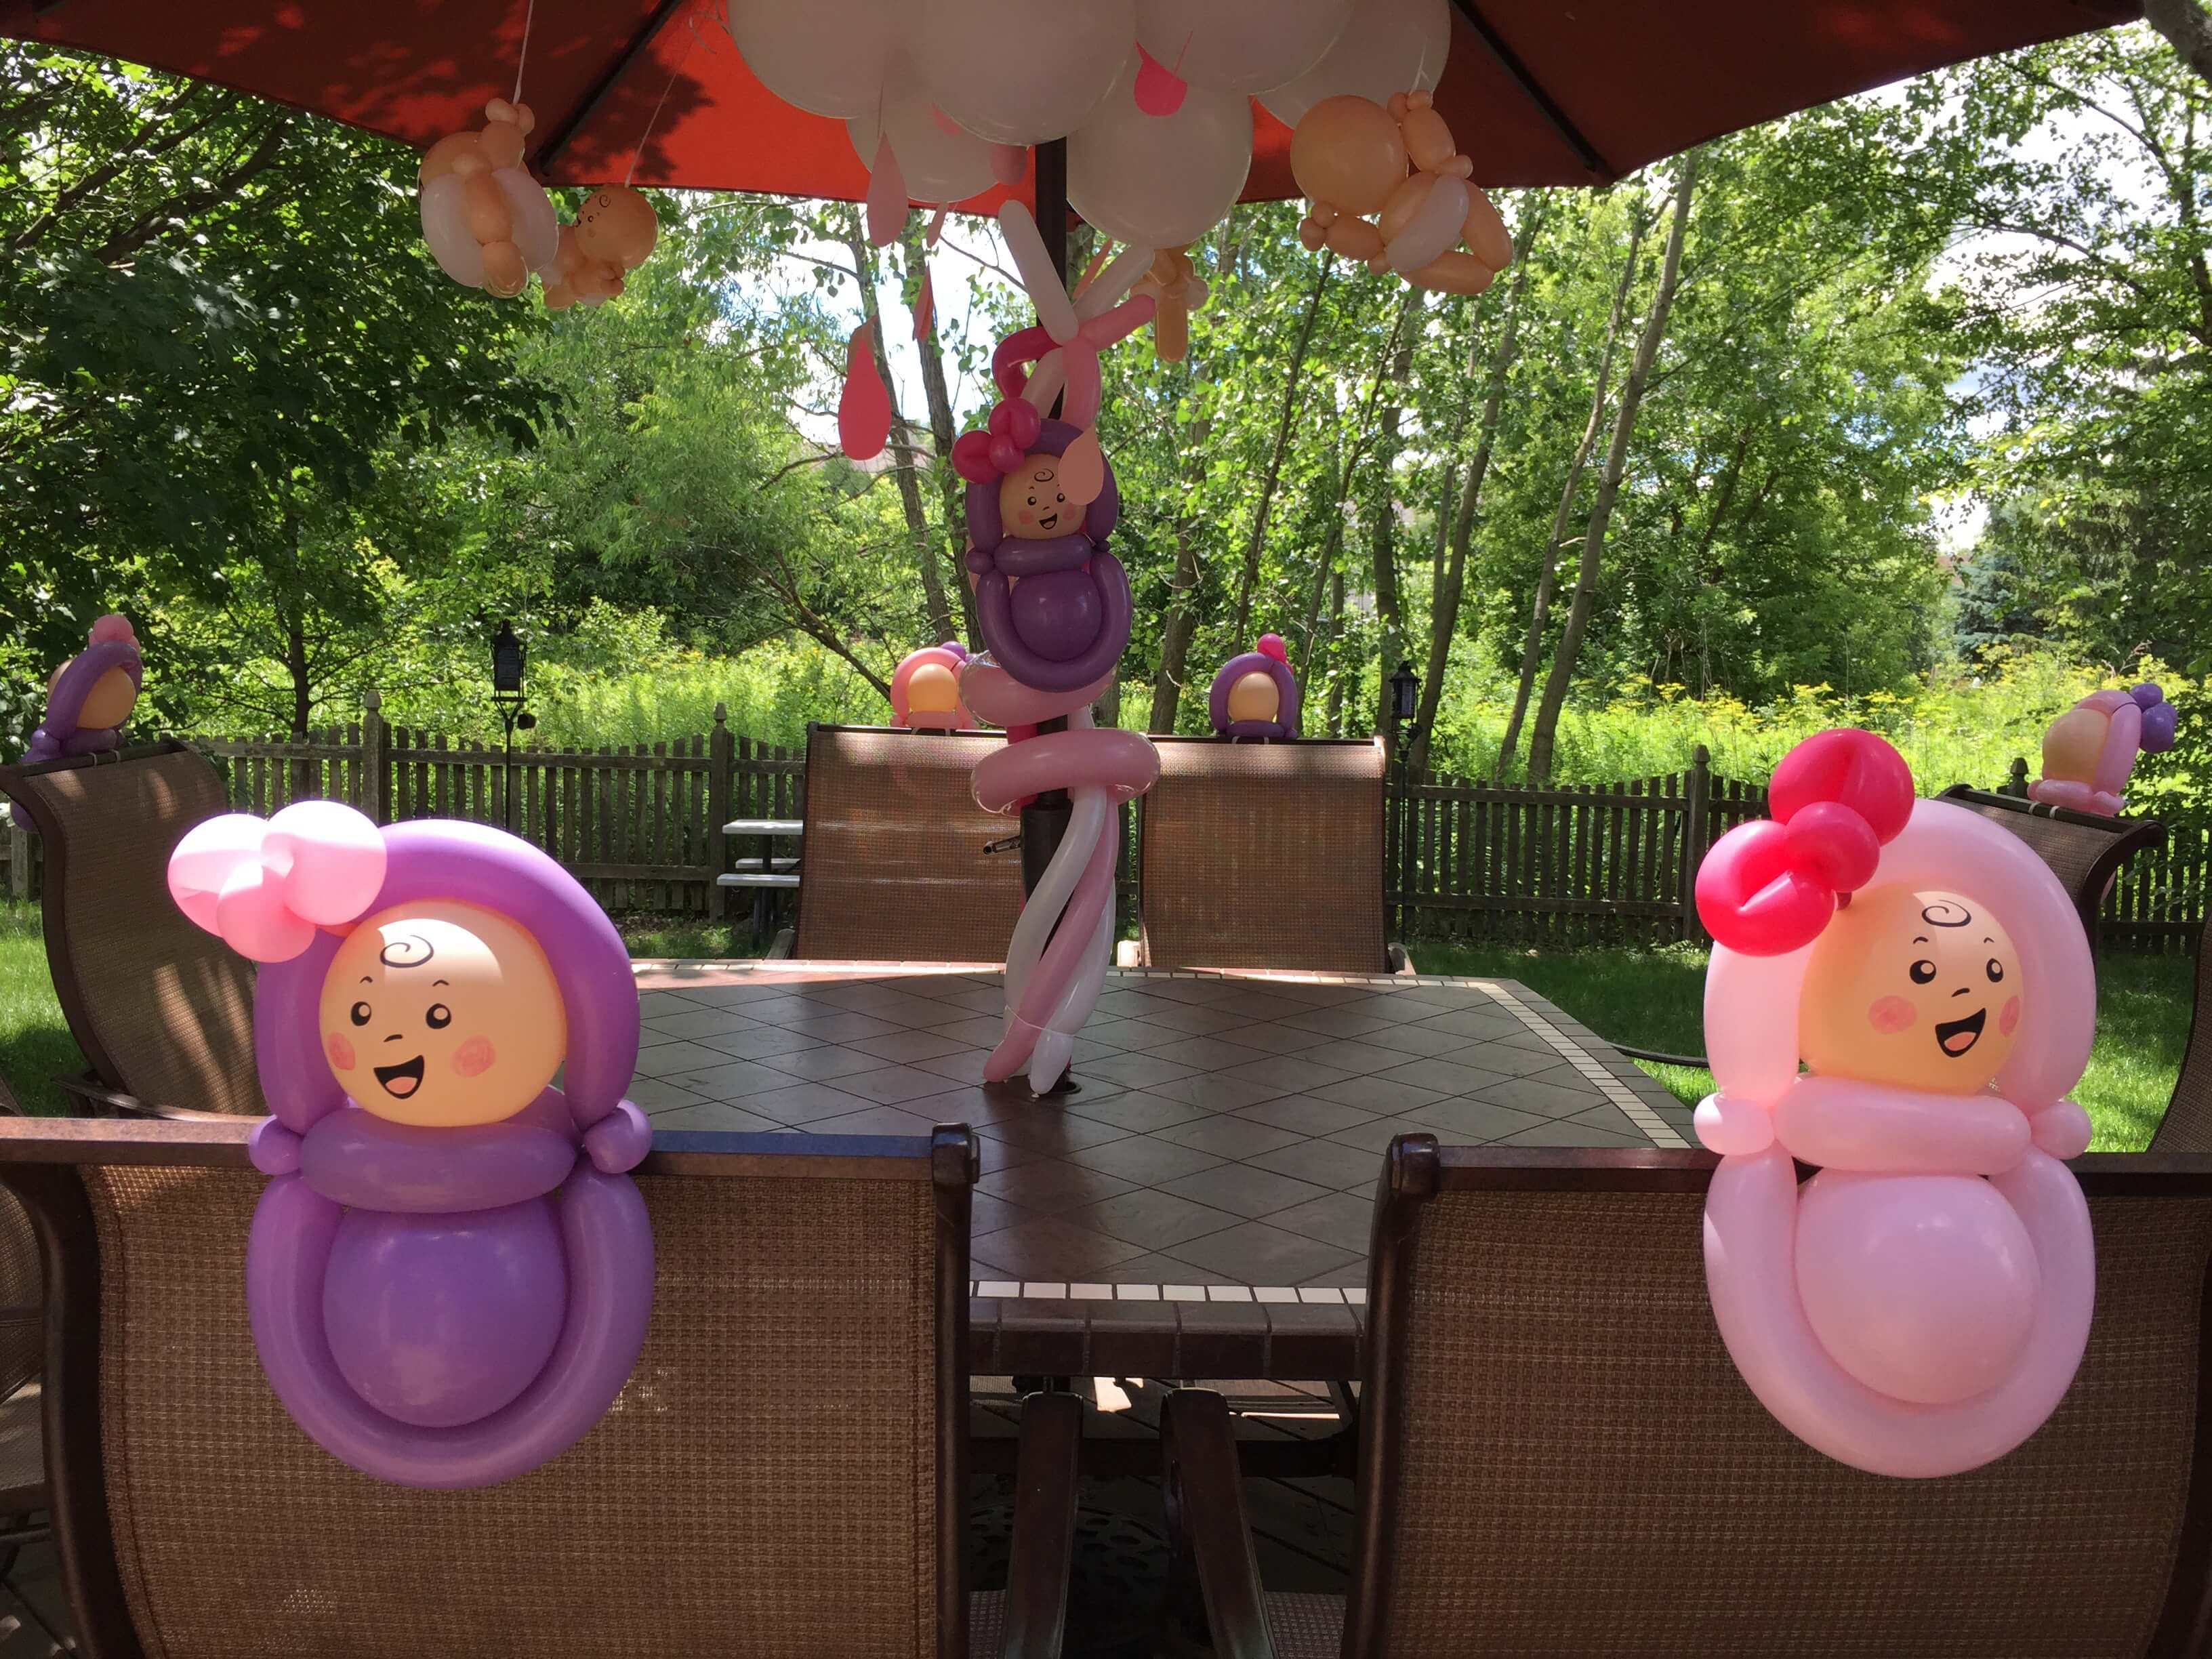 jazzi entertainment services Balloon Decor